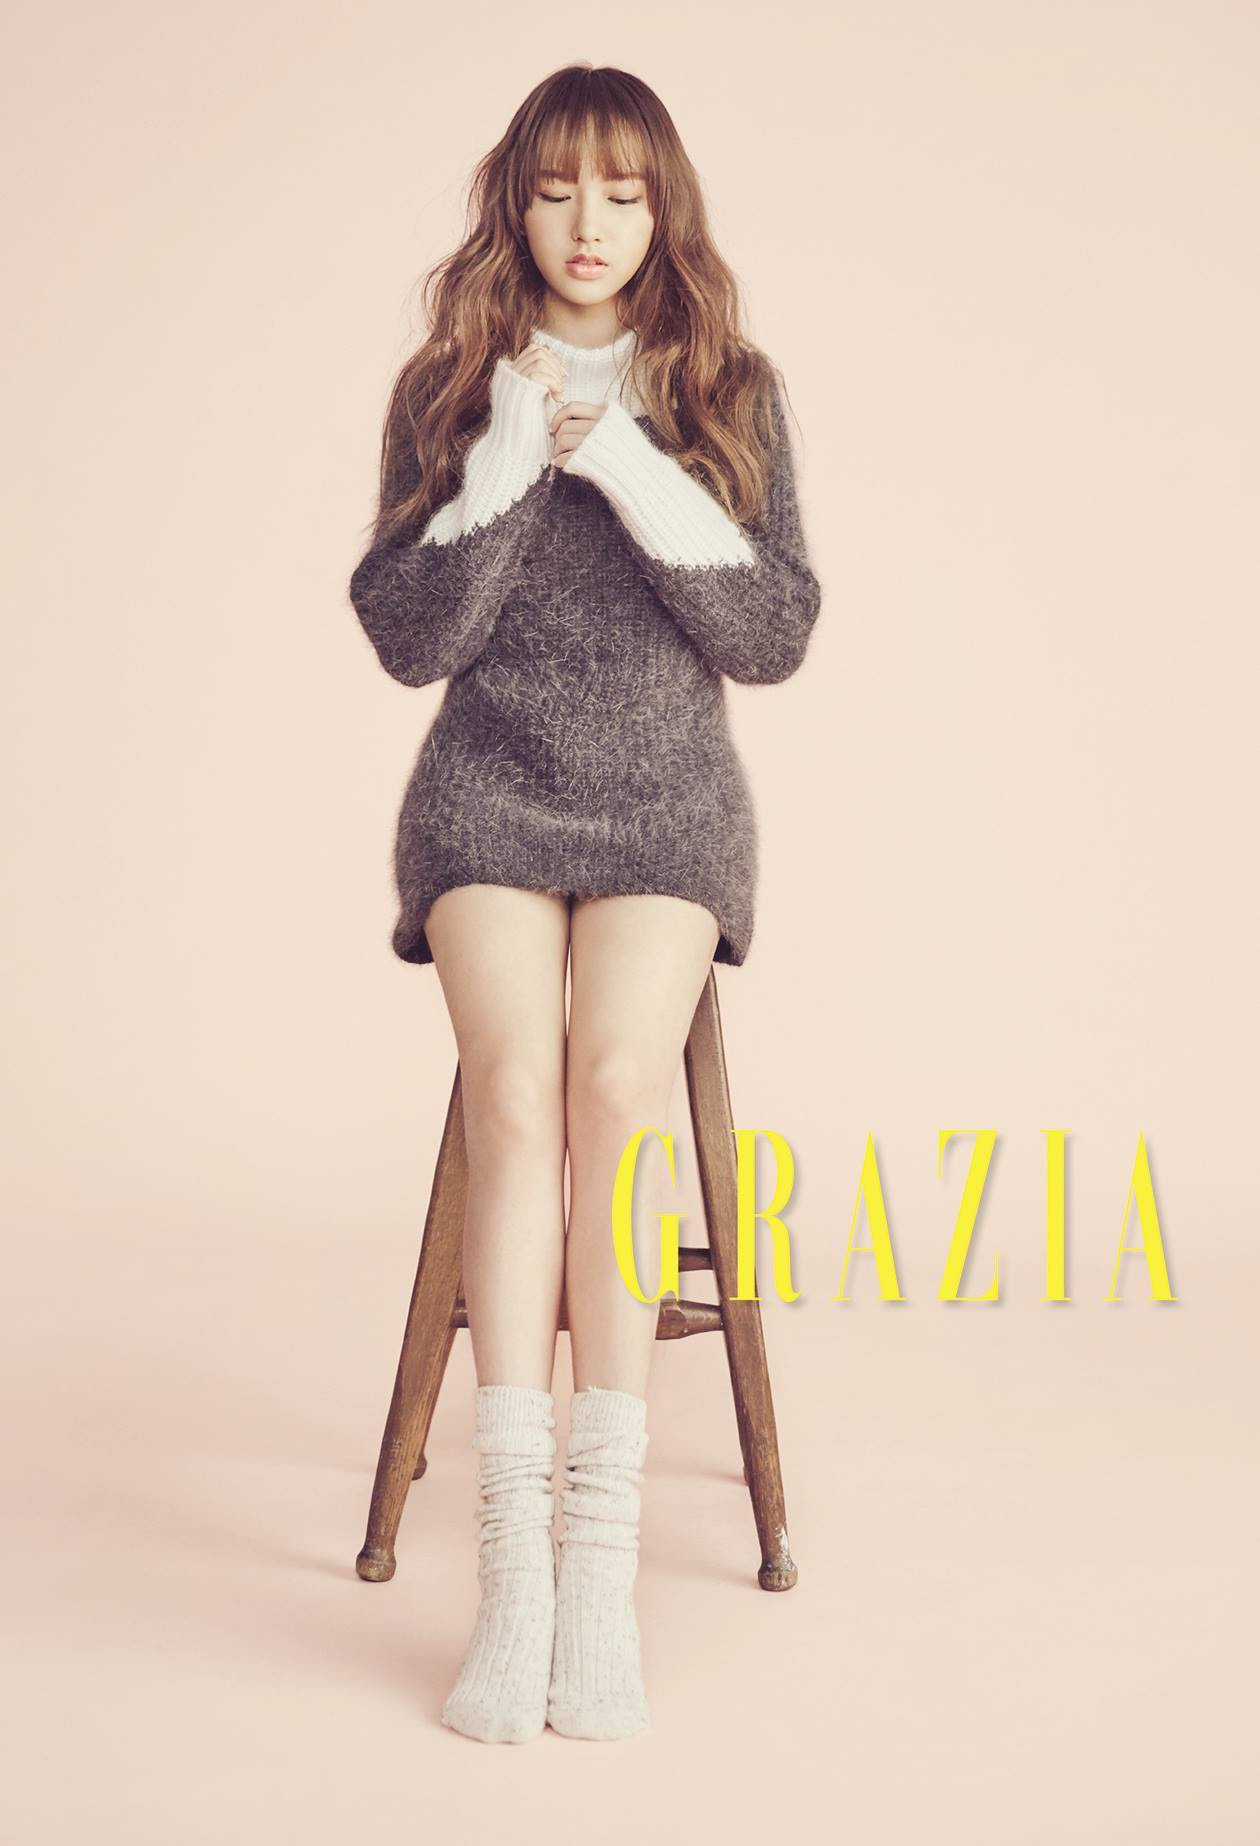 Cheng Xiao (WJSN) - Grazia Magazine November Issue '16